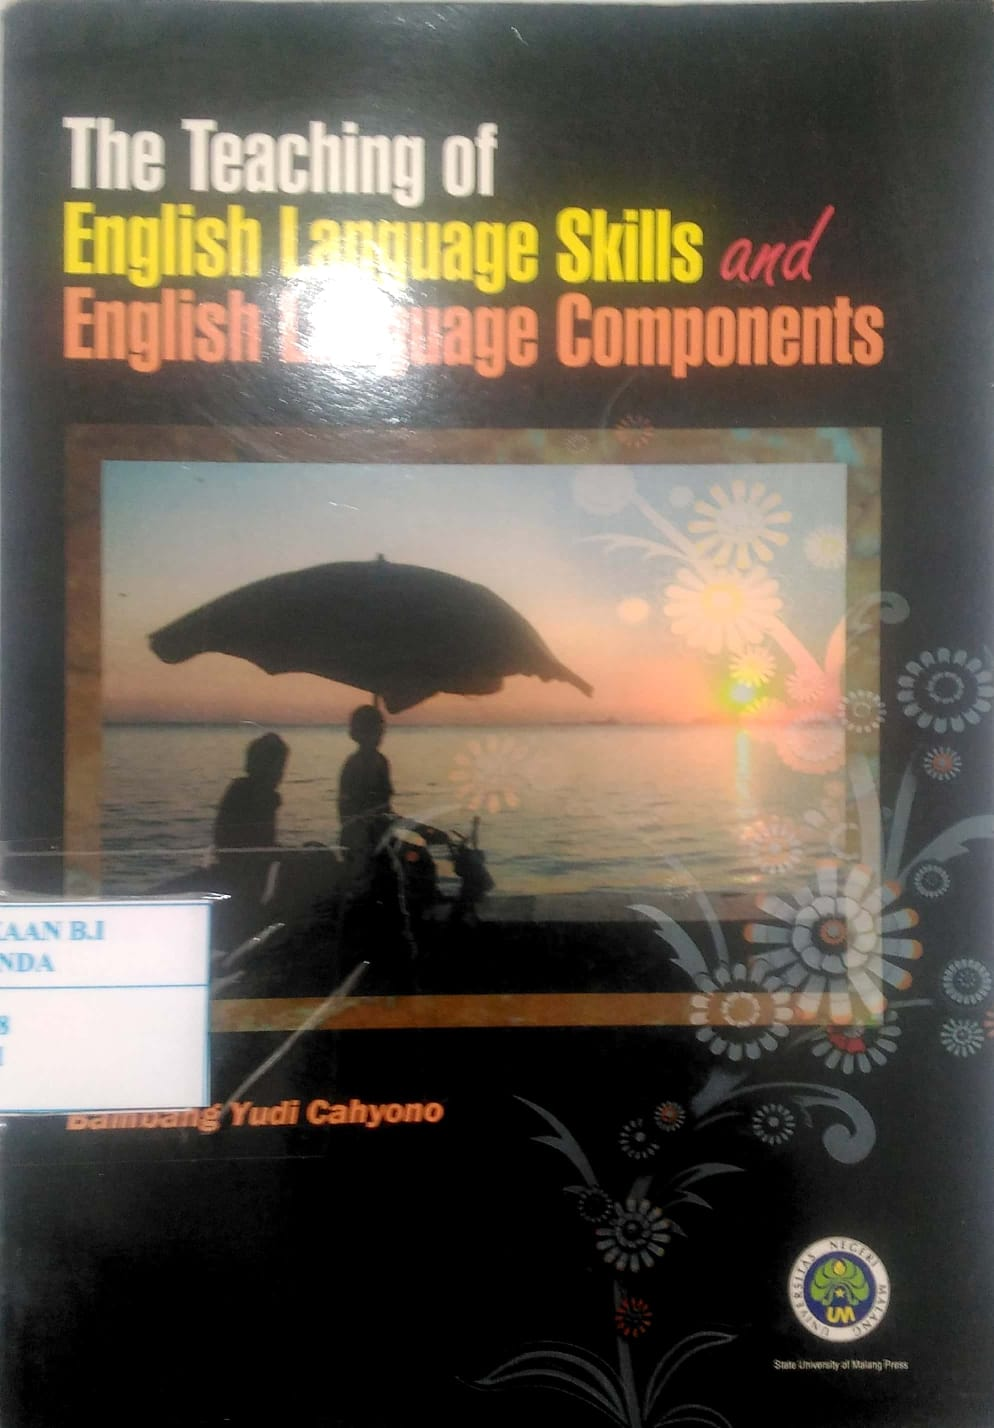 The Teaching of English Language Skills and English Language Components